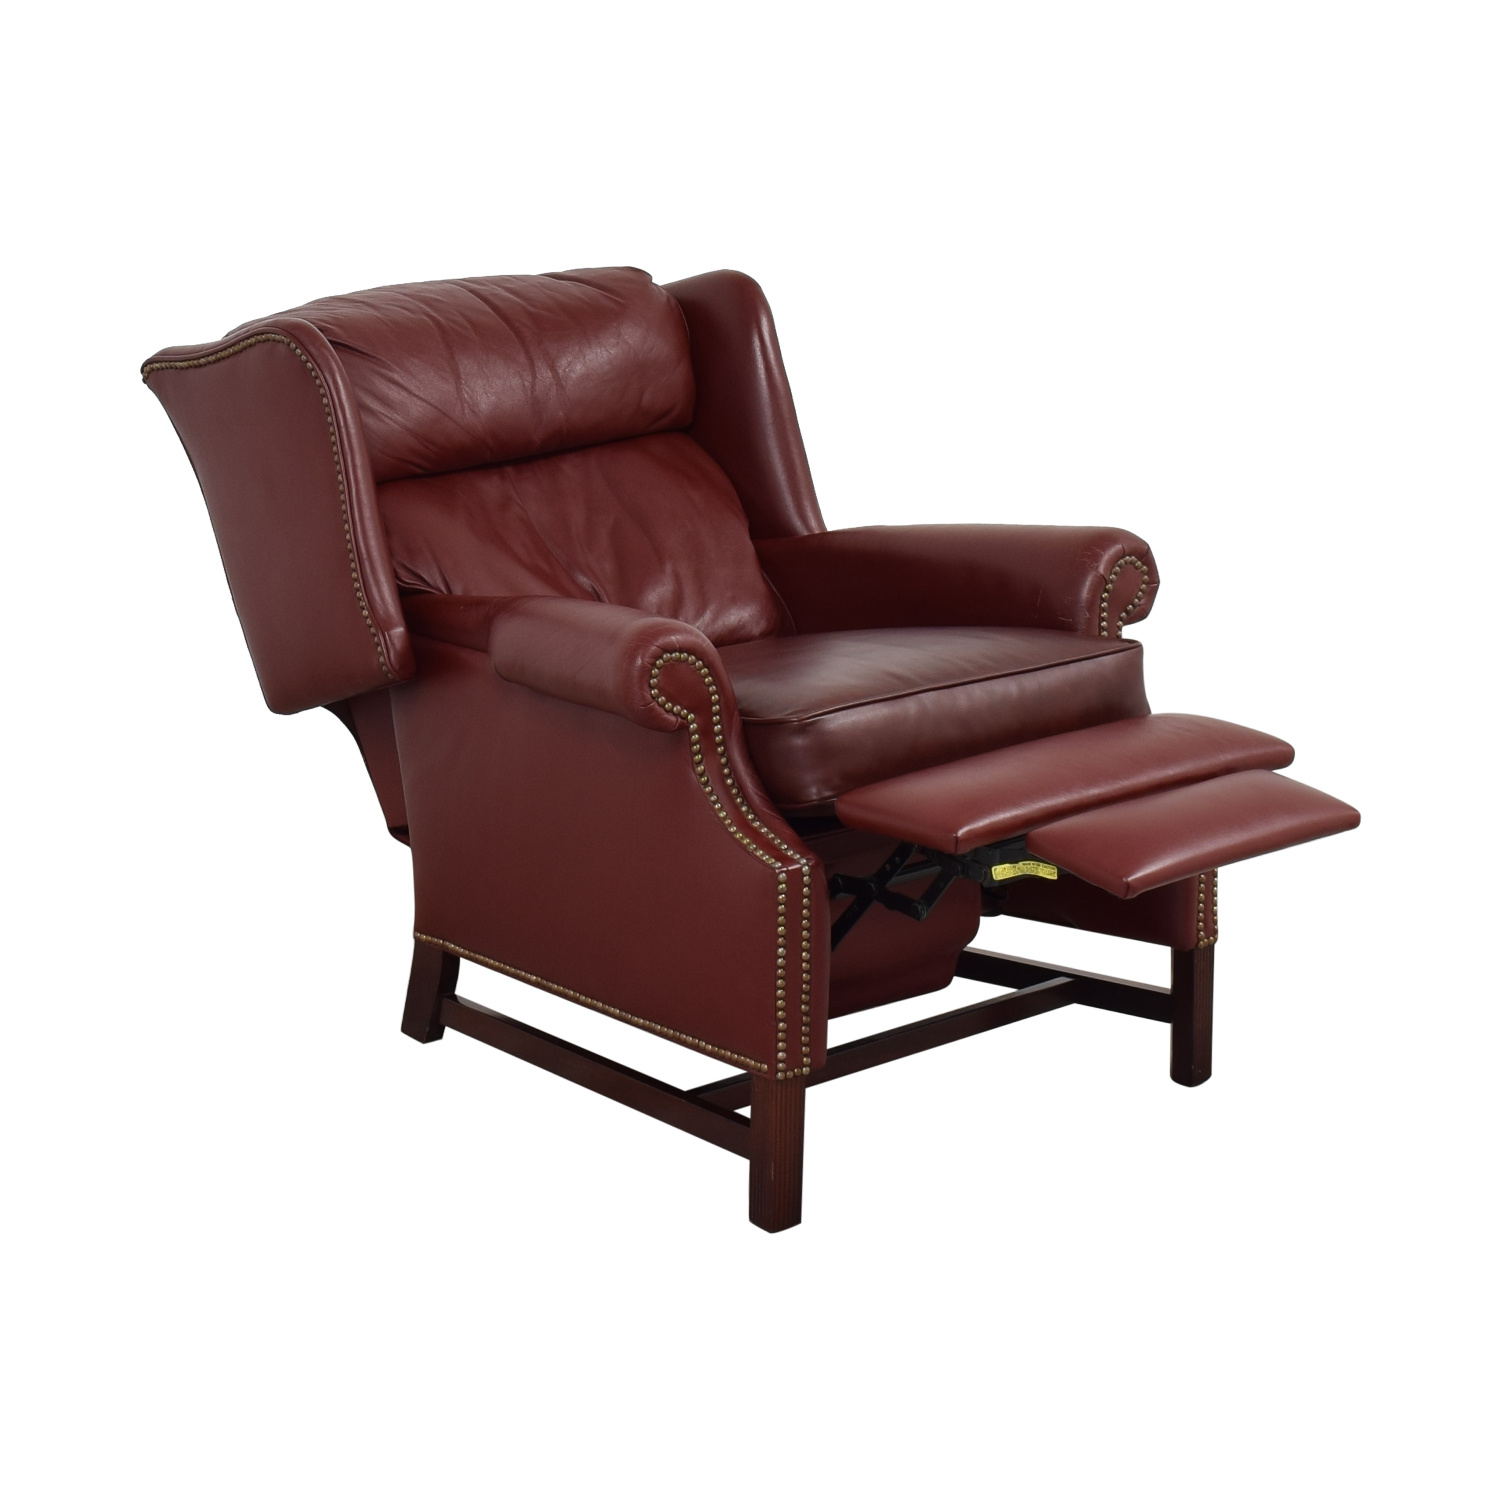 Classic Leather Recliner Chair / Chairs